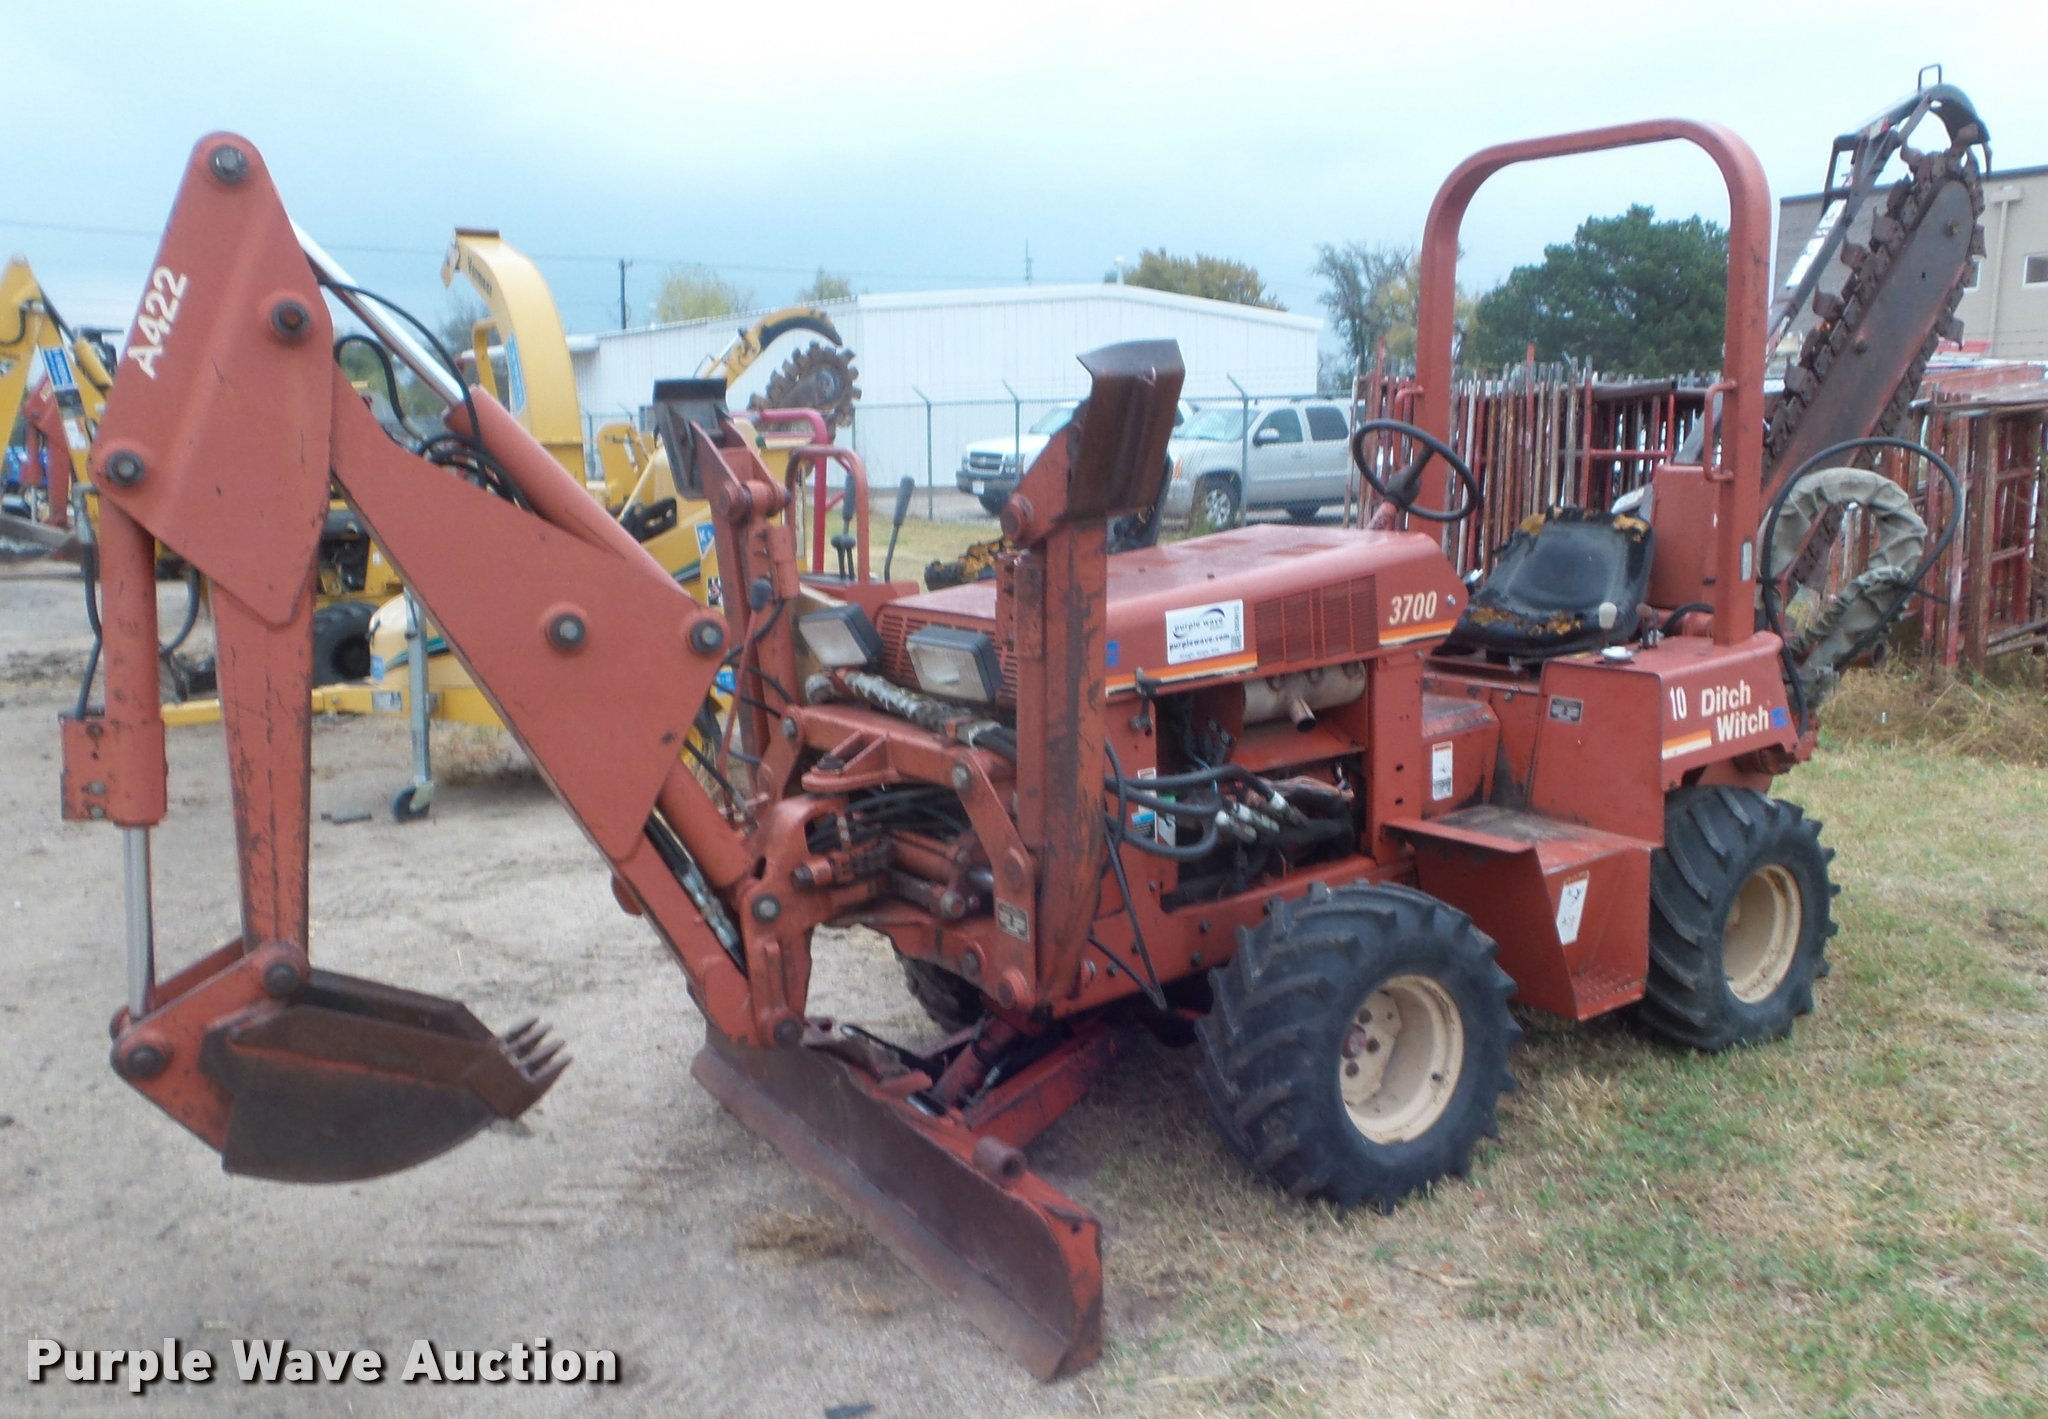 Ditch witch 3700 service manual open source user manual ditch witch 3700 trencher item db3613 sold december 13 rh purplewave com ditch witch 1230 parts fandeluxe